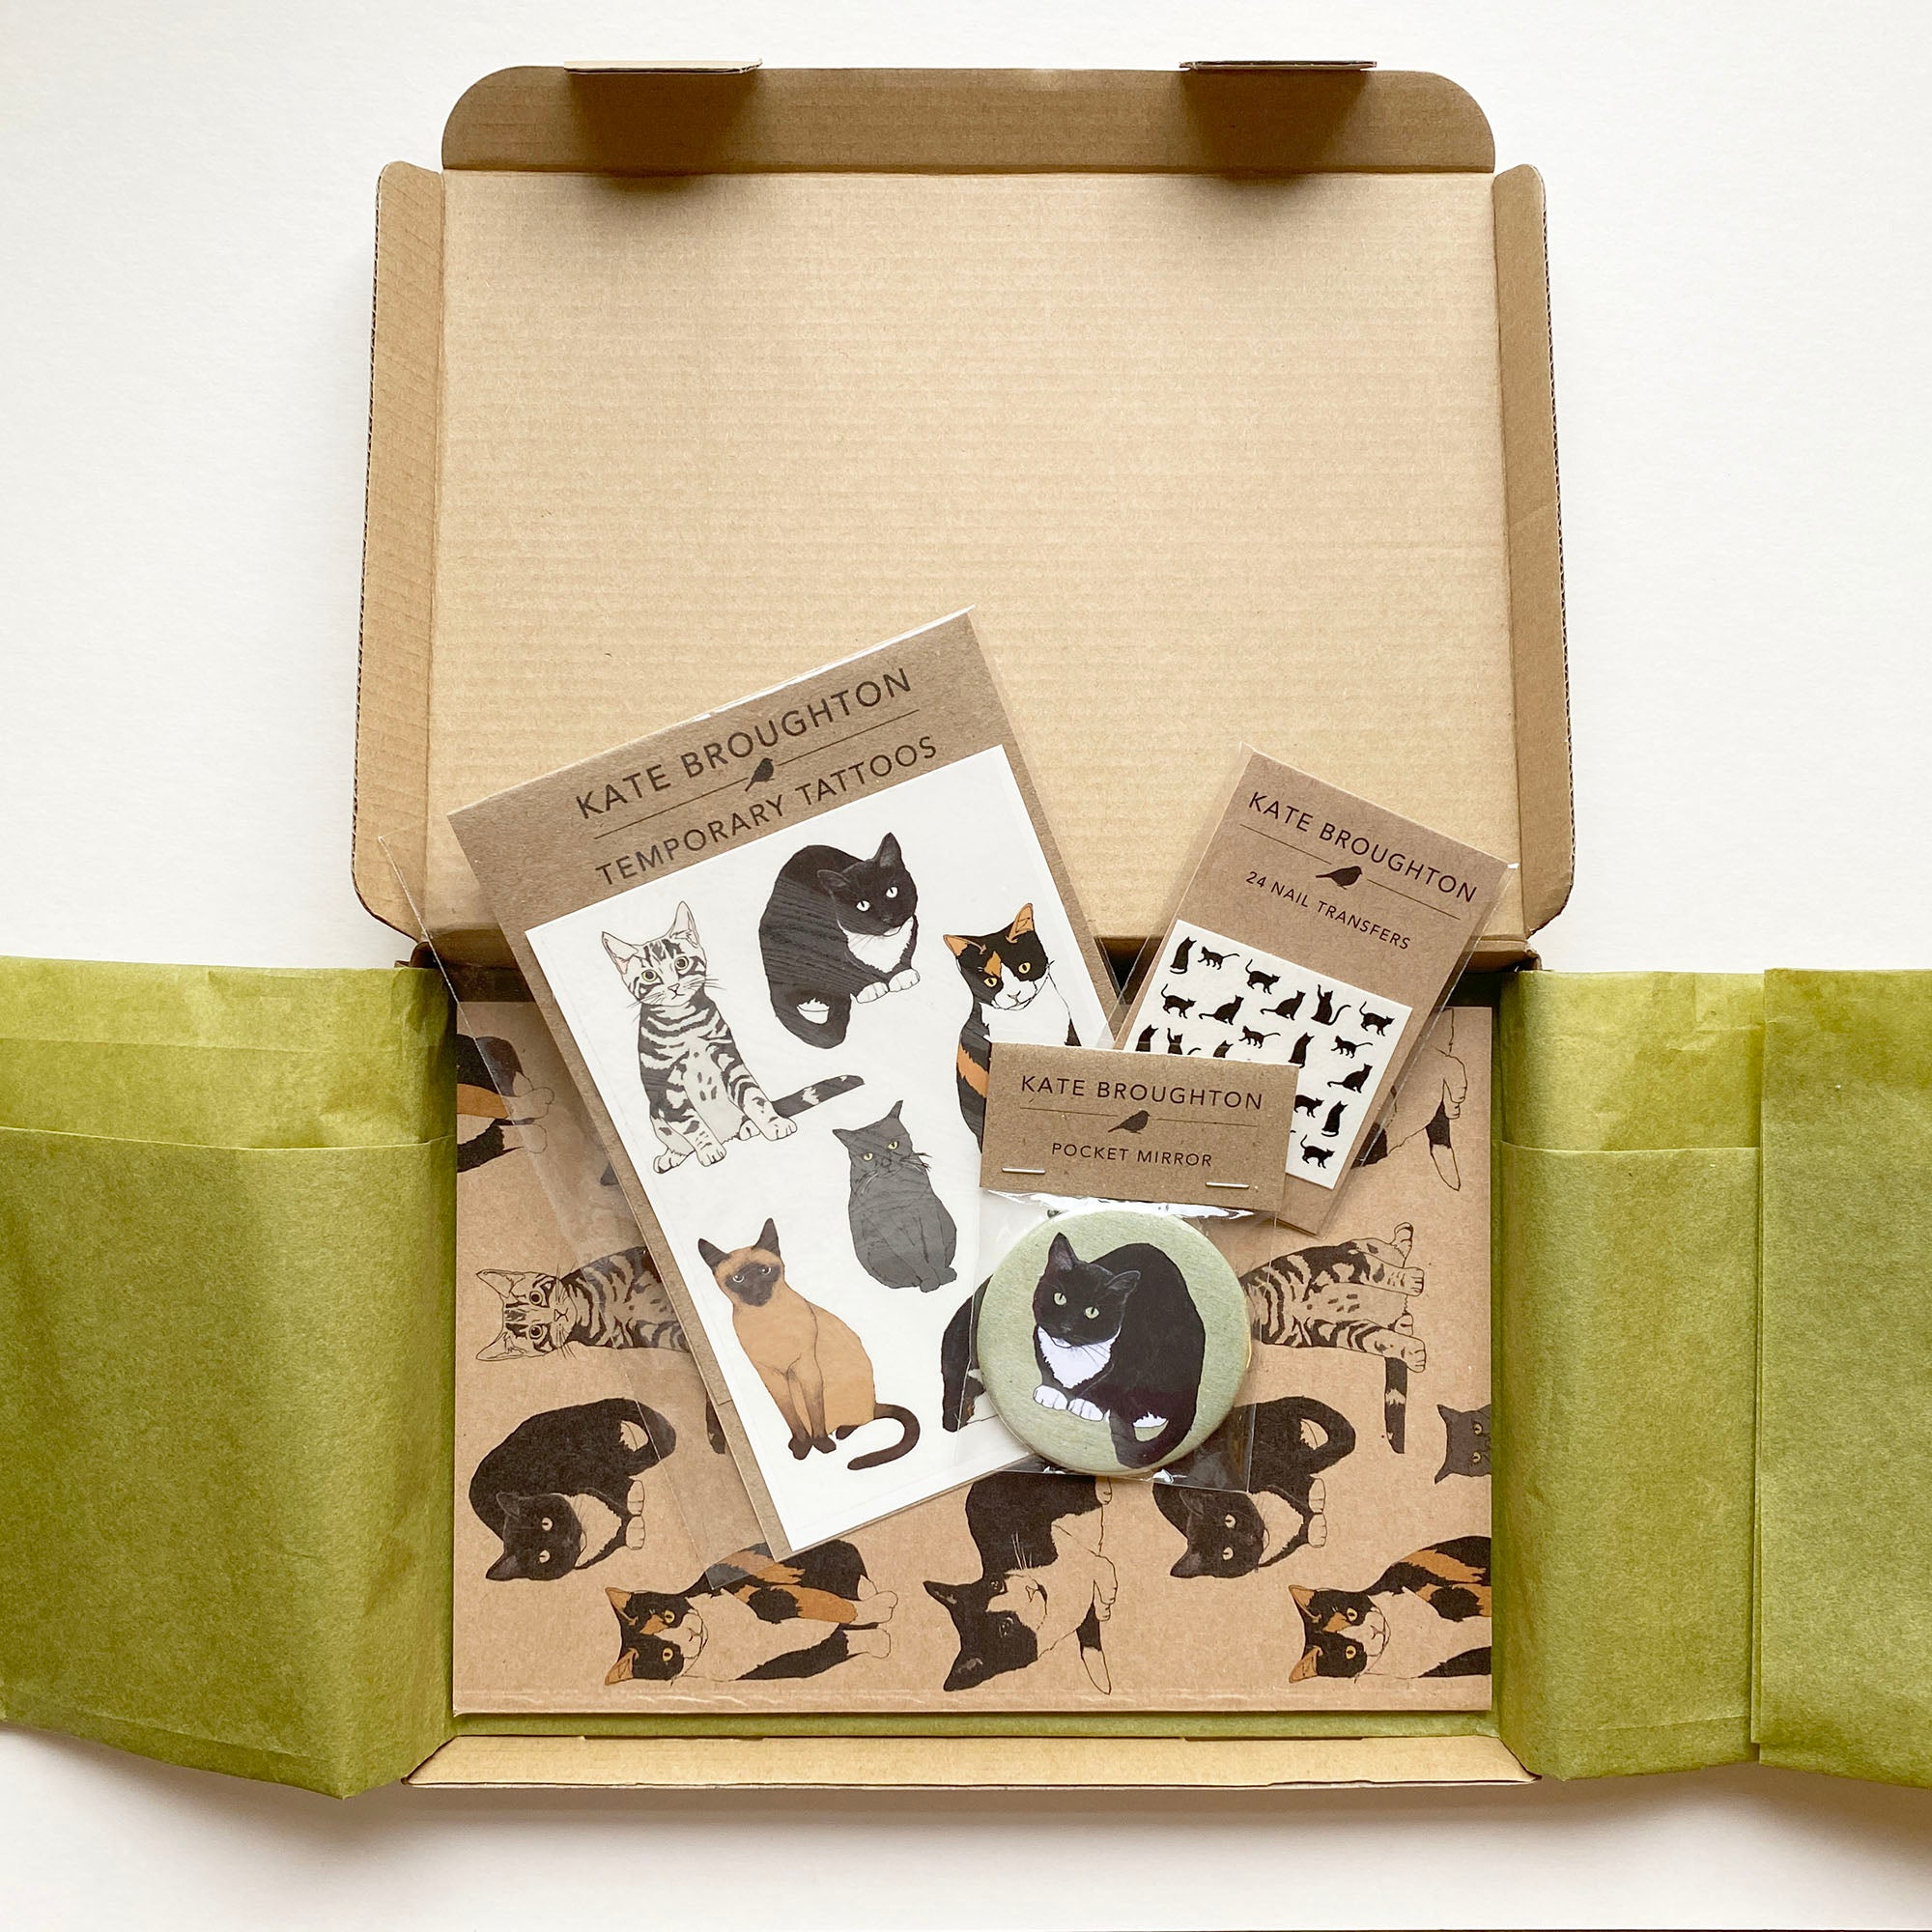 Cat themed letterbox gift box